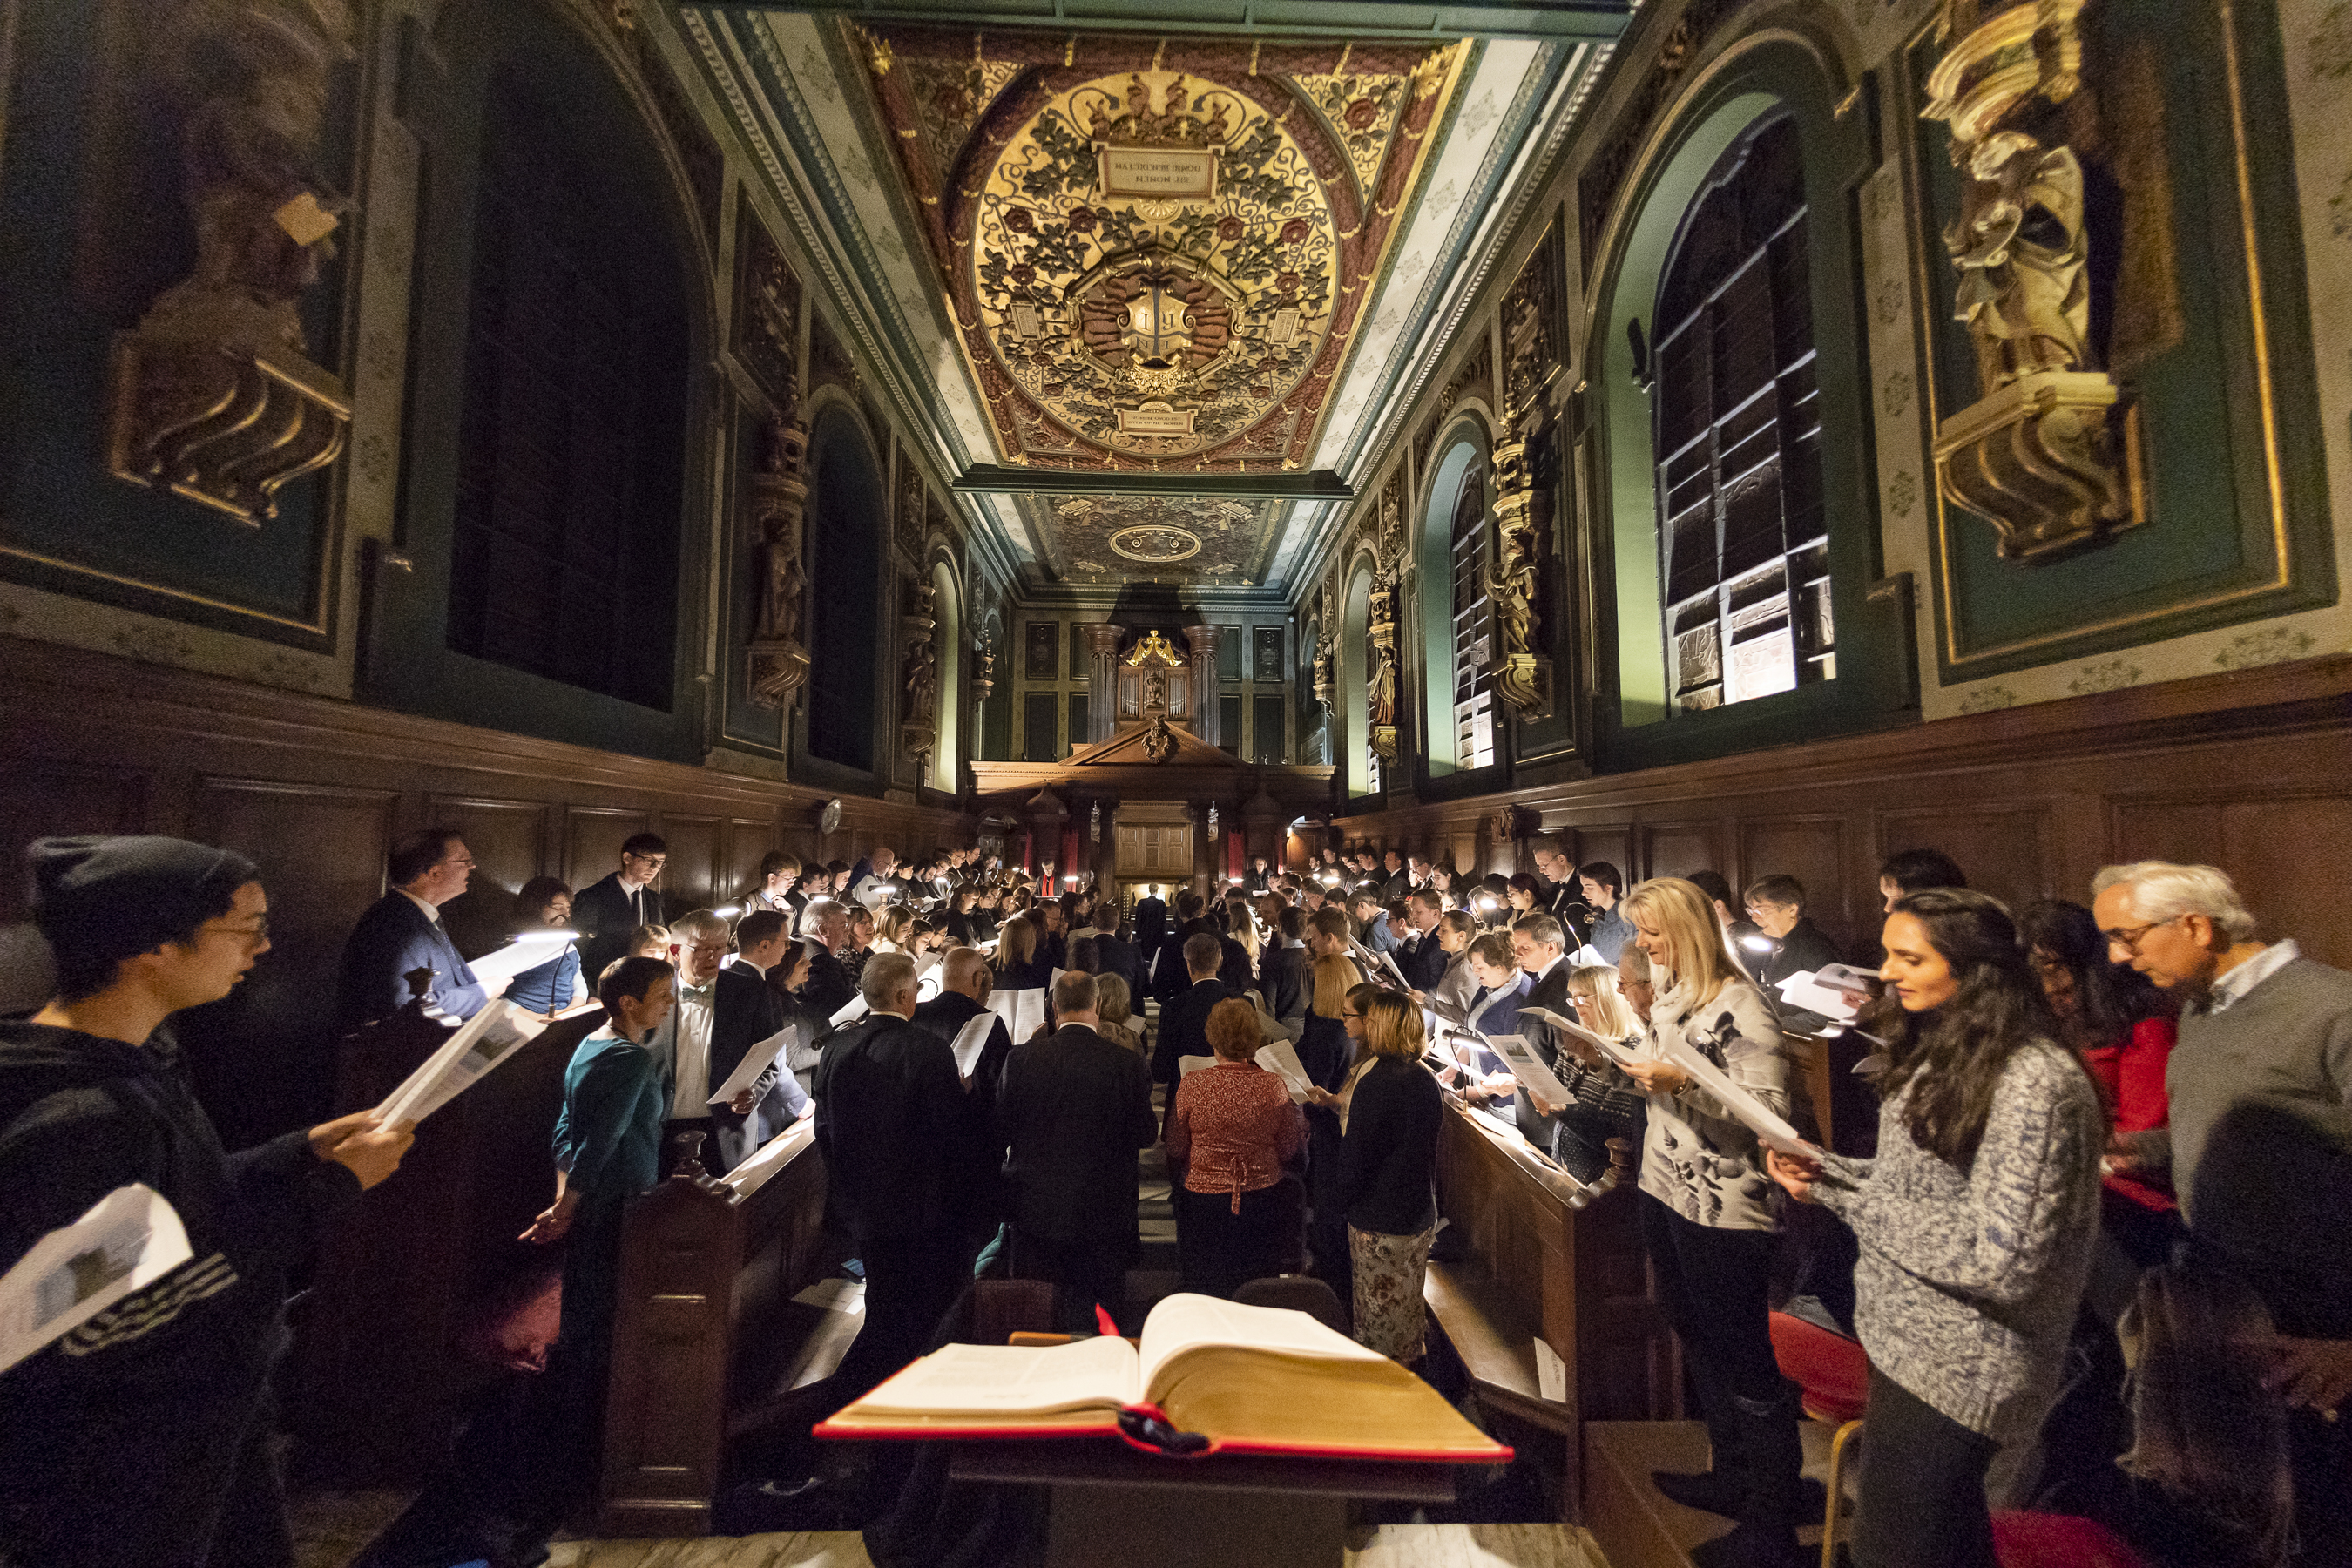 """The congregation sings a Christmas hymn during the traditional Church of England """"Nine Lessons and Carols"""" service at the Pembroke College Chapel in Oxford, England, on Sunday, Nov. 25, 2018."""